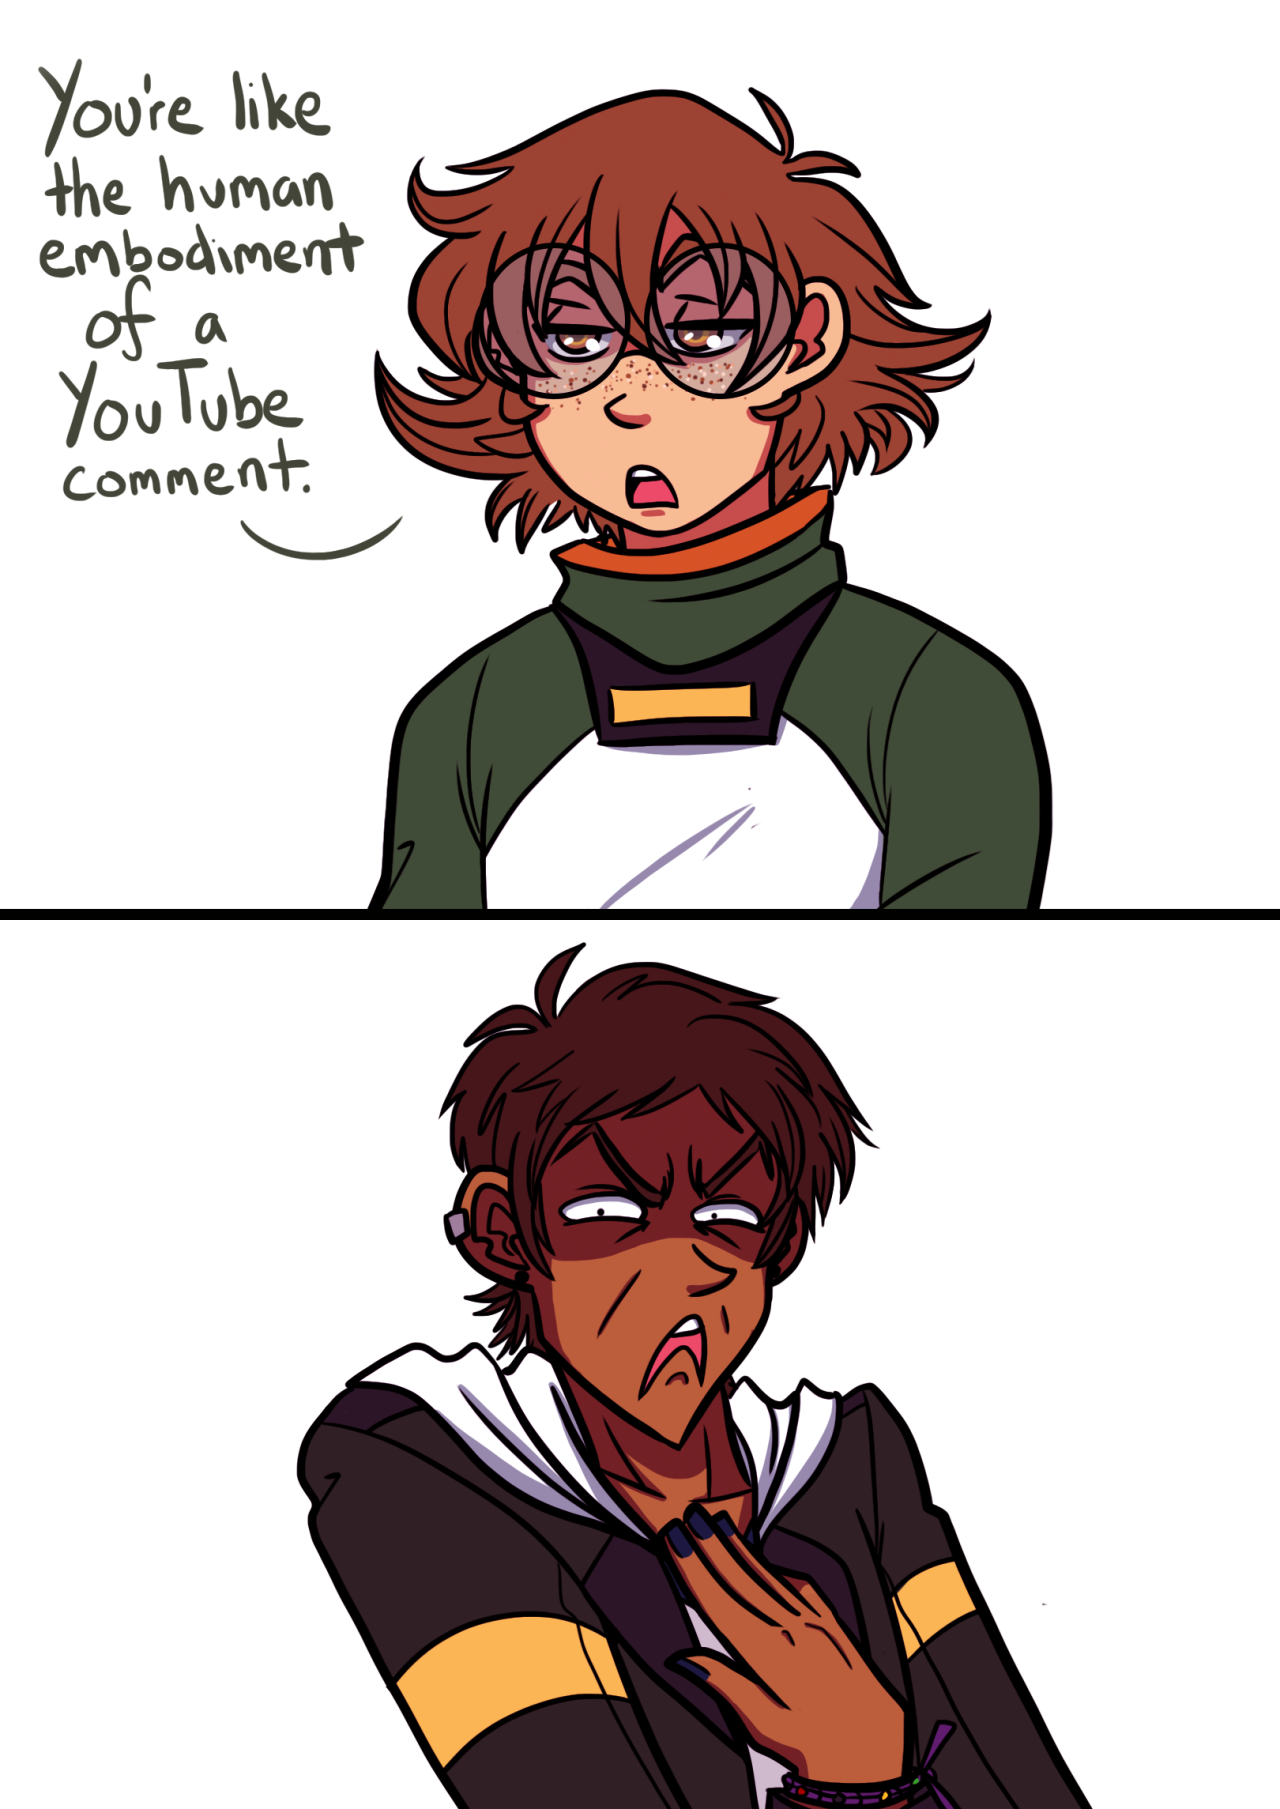 2441d8925623d658d021be1f481c087b image result for voltron memes keith pinterest memes and comic